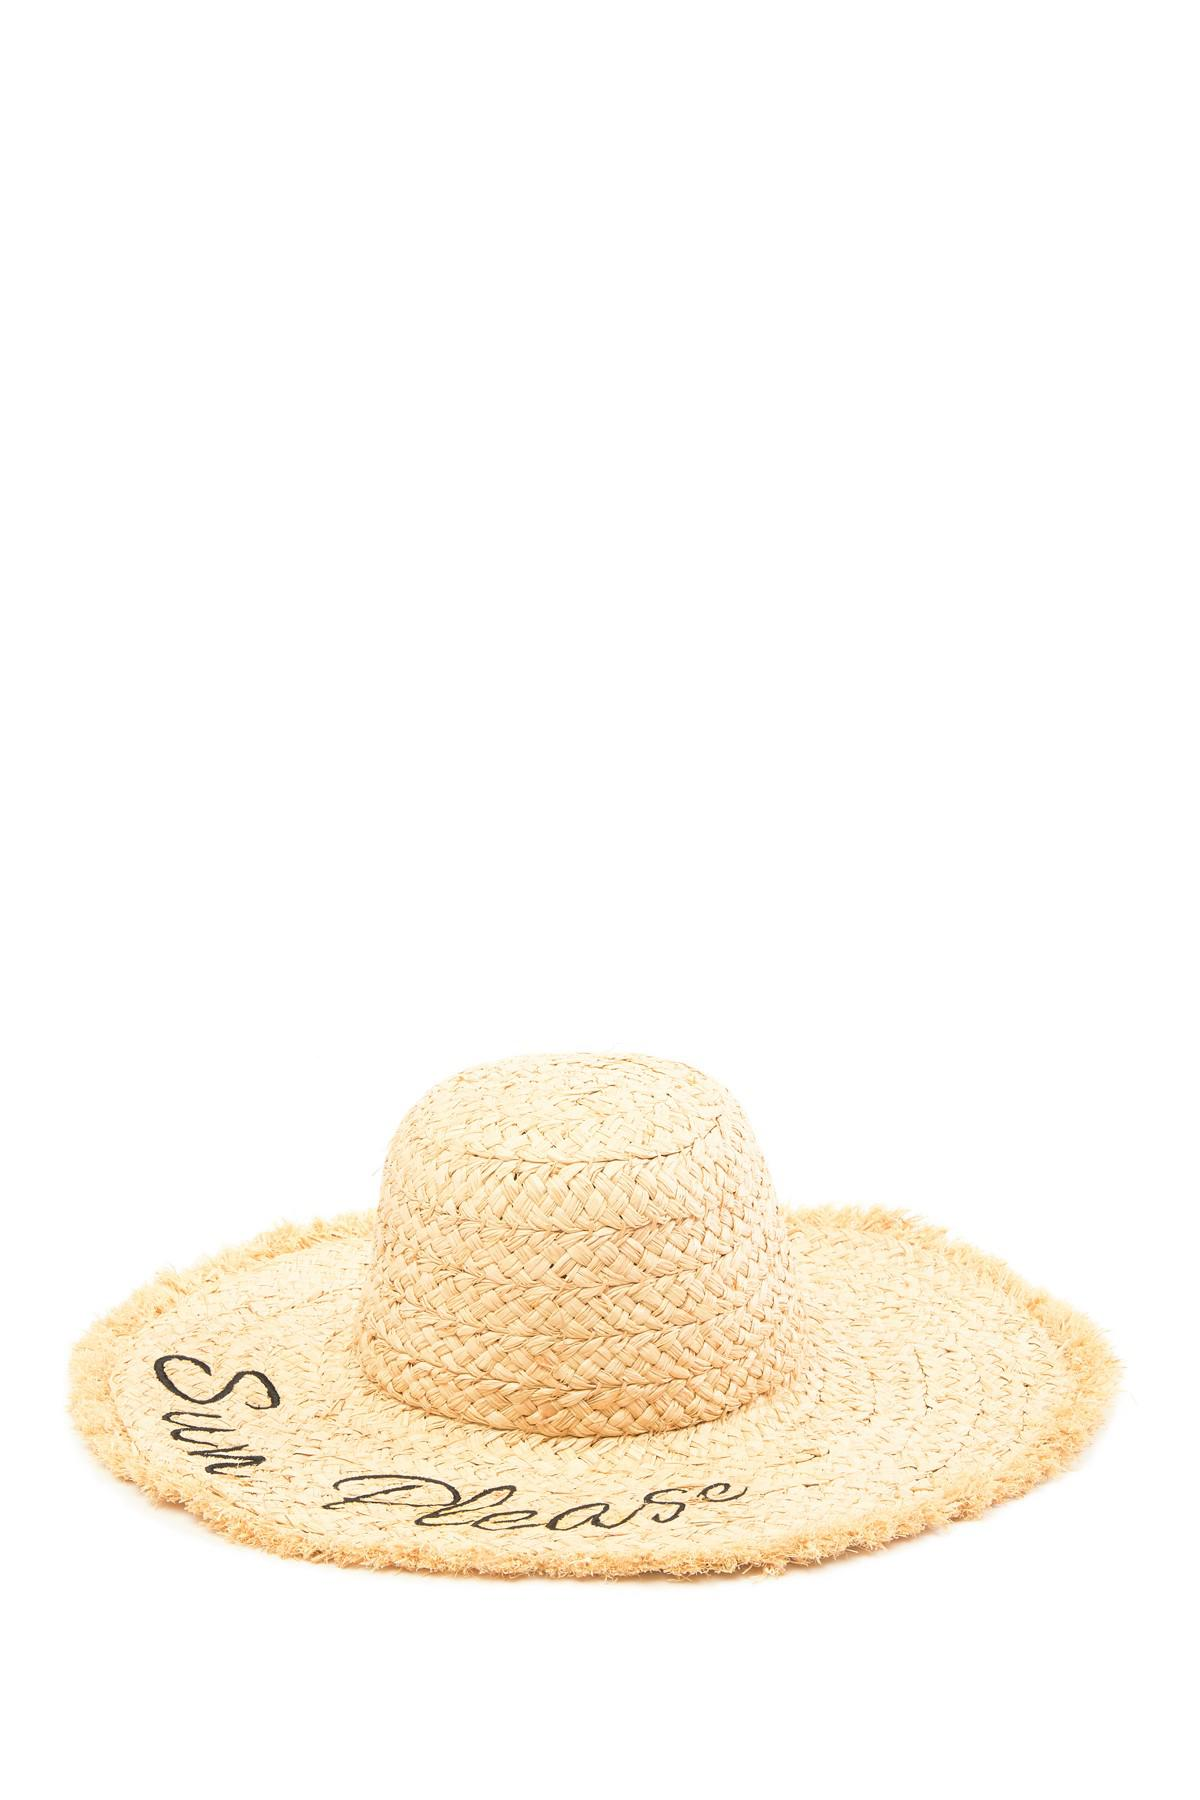 0c639dc012a53 Roffe Accessories Sun Please Straw Boater Hat in Natural - Lyst